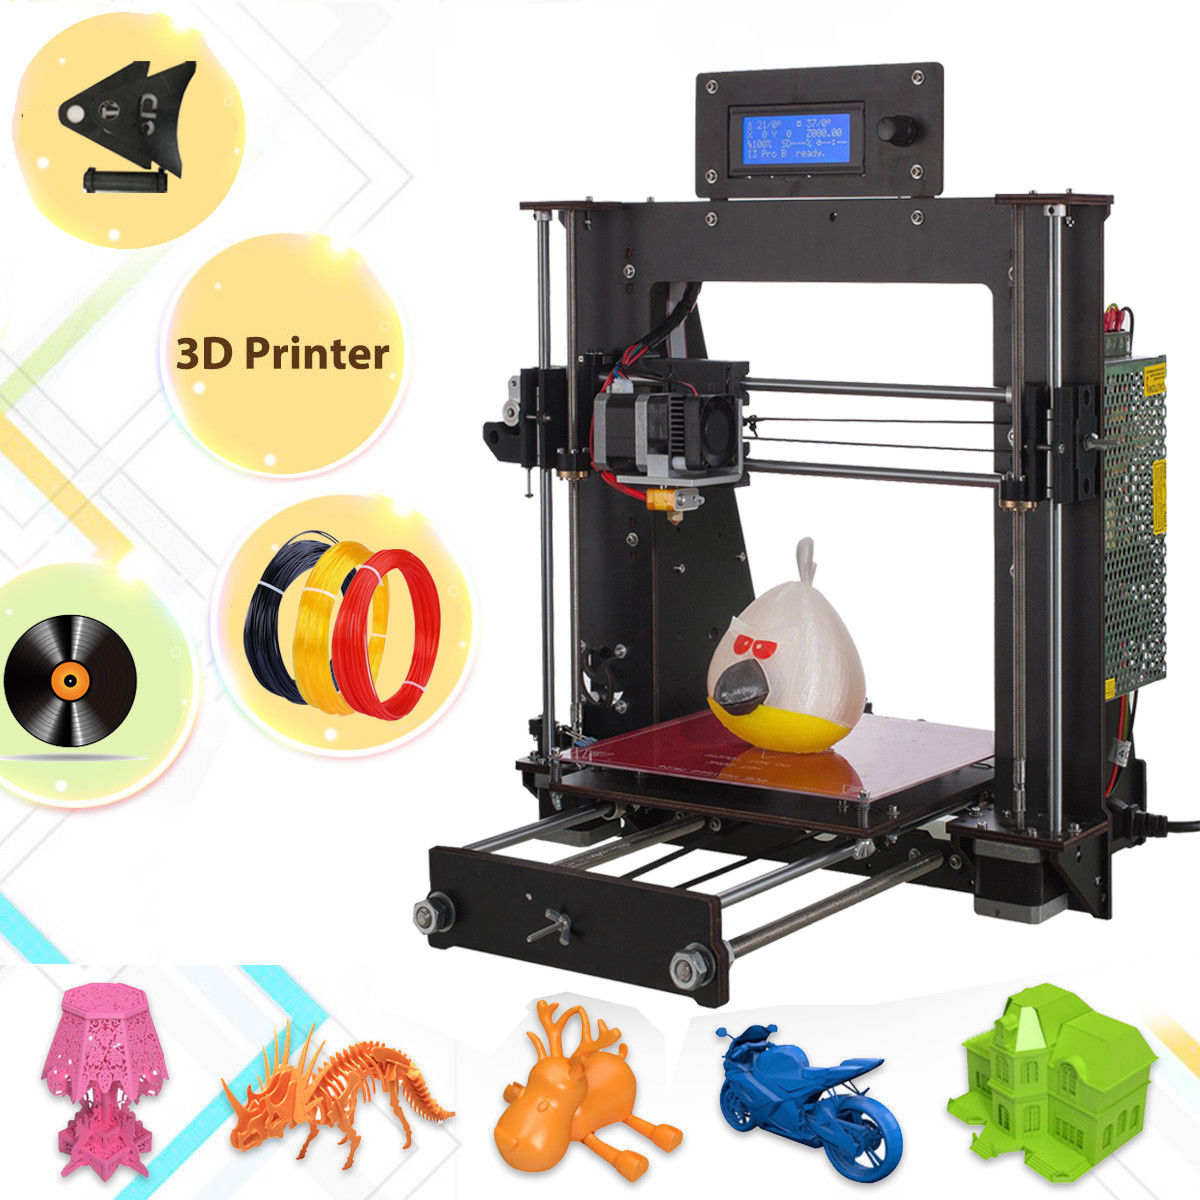 2018 Upgraded Full Quality High Precision Reprap Prusa i3 DIY 3D Printer MK8 LCD 2016 upgrade free shipping 3d printer high precision reprap prusa i3 220 220 240mm 3d printer diy kit 0 5kg filament 8g sd card